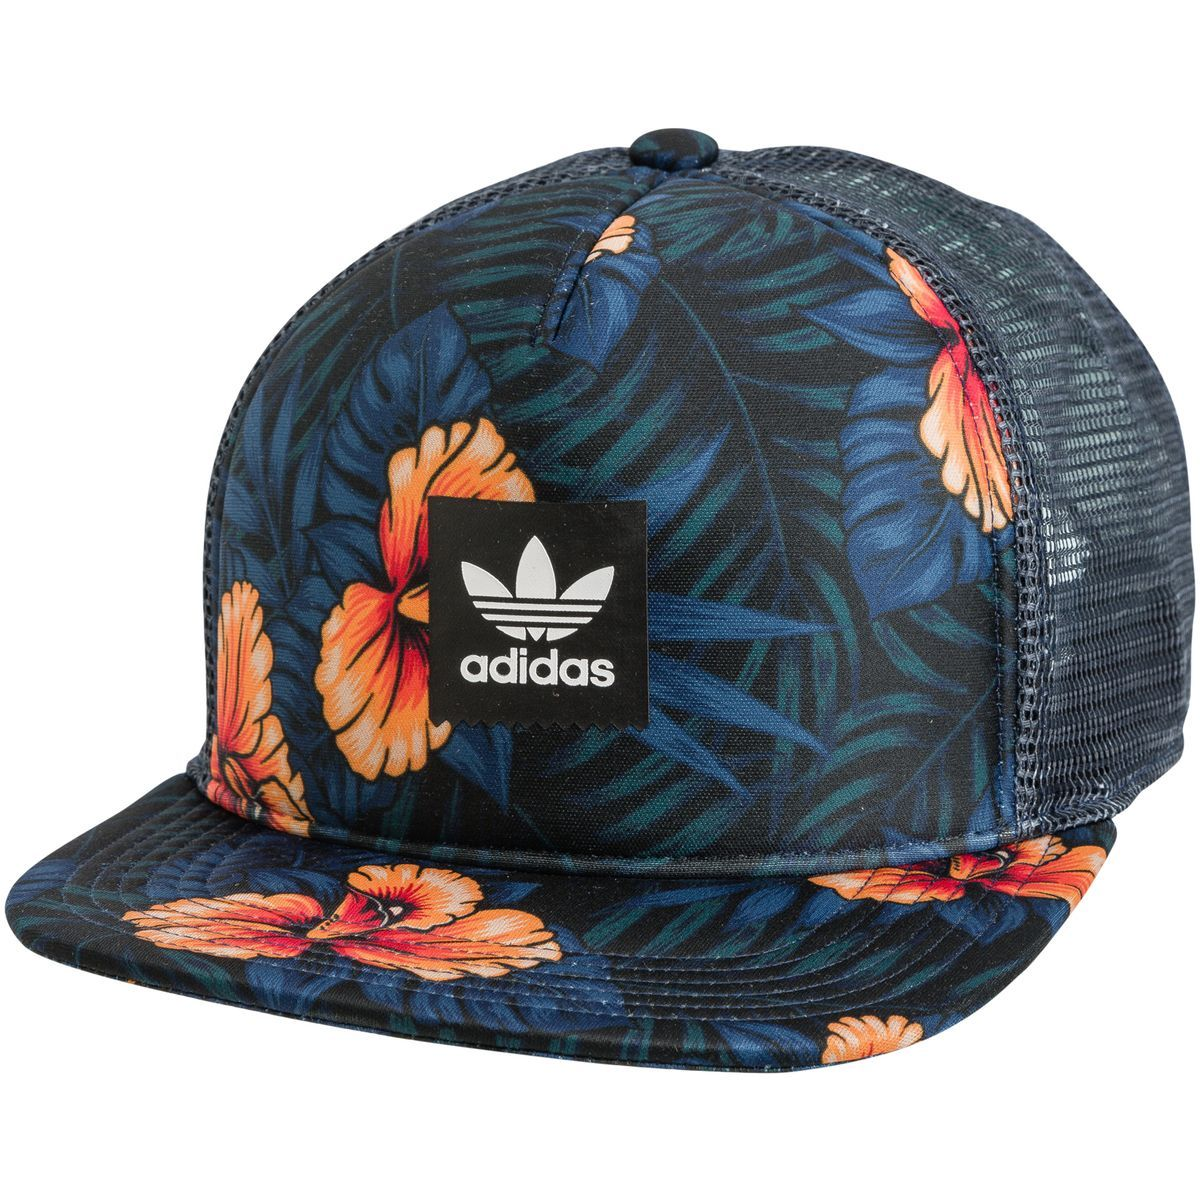 65f77f319cbb11 Adidas Floral Trucker Hat. Men s trucker caps. Snapback closure. Logo patch  at front panel. Cotton front panel and mesh back panels. Allover floral  pattern.